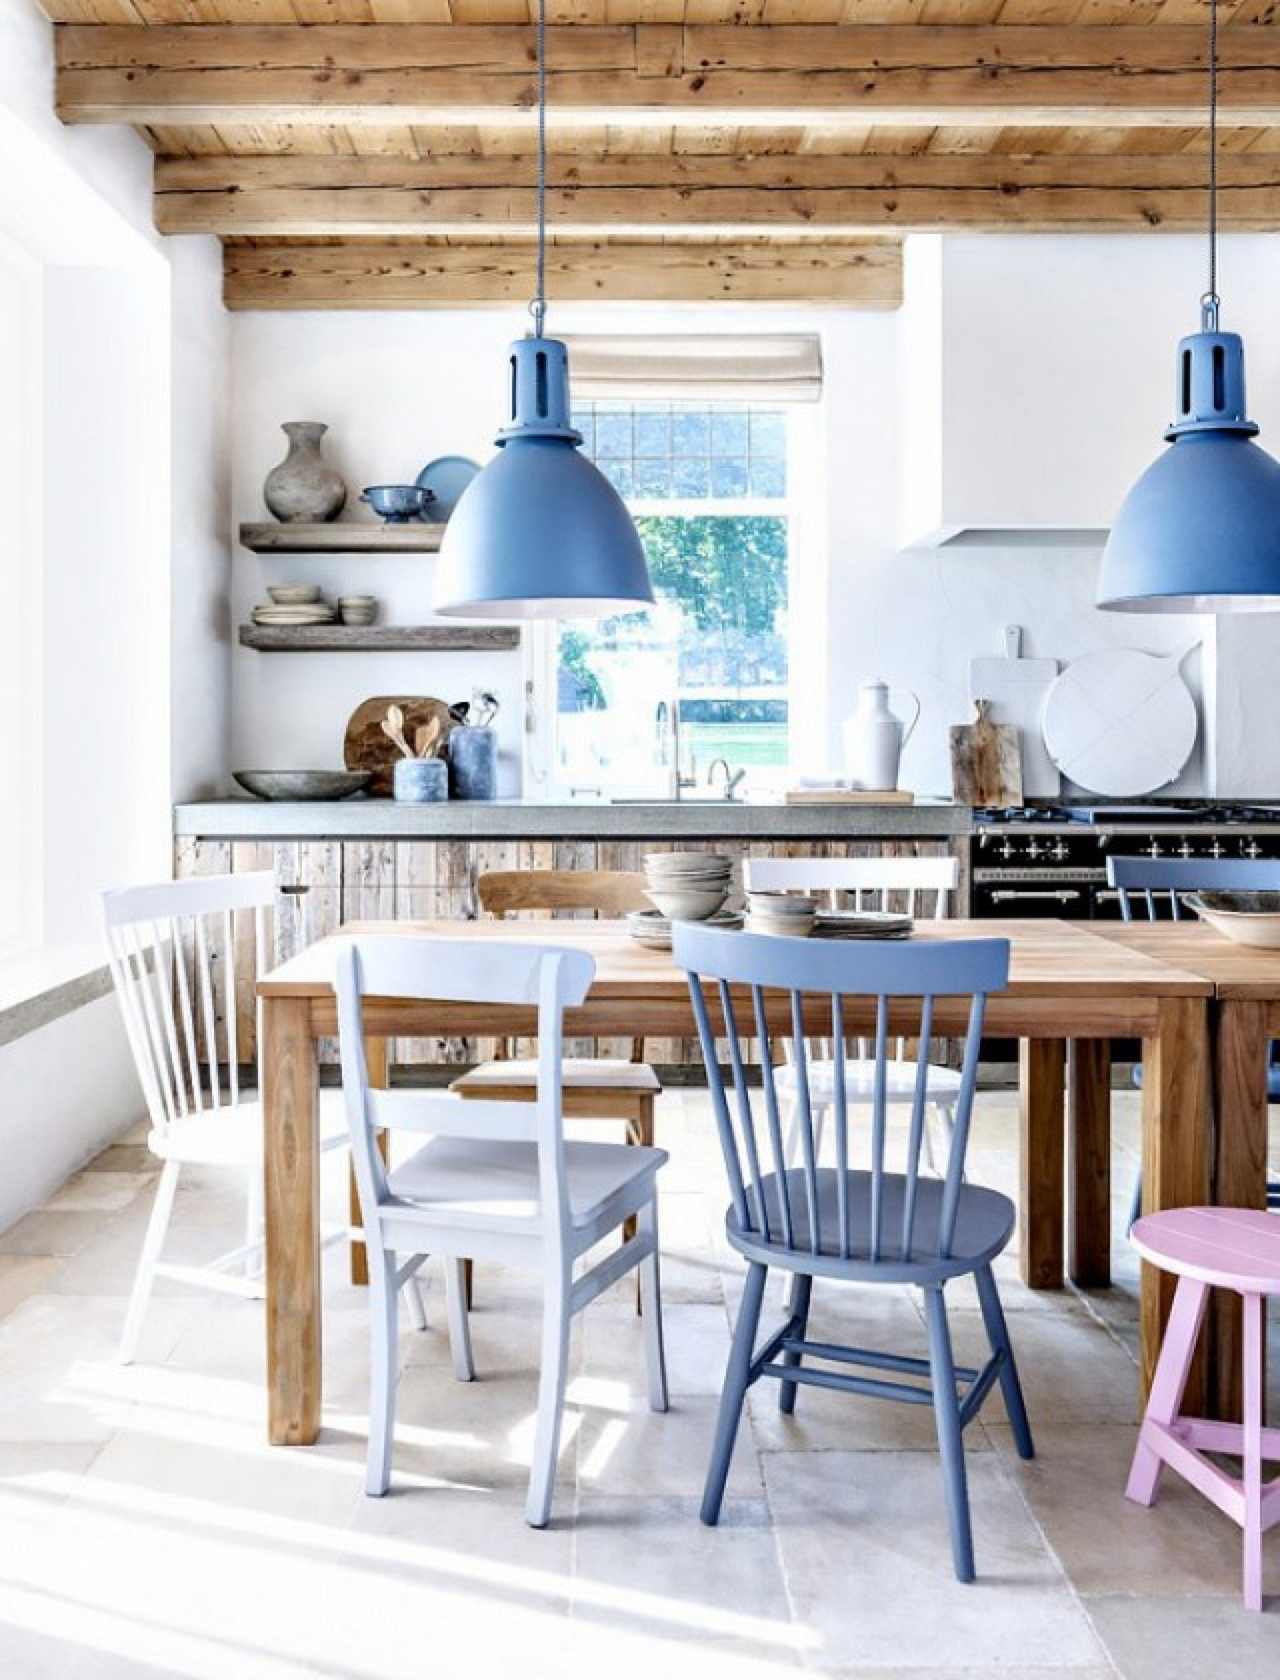 Introducing Colour Into Your Dining Room Decor Has Never Been So Easy 1